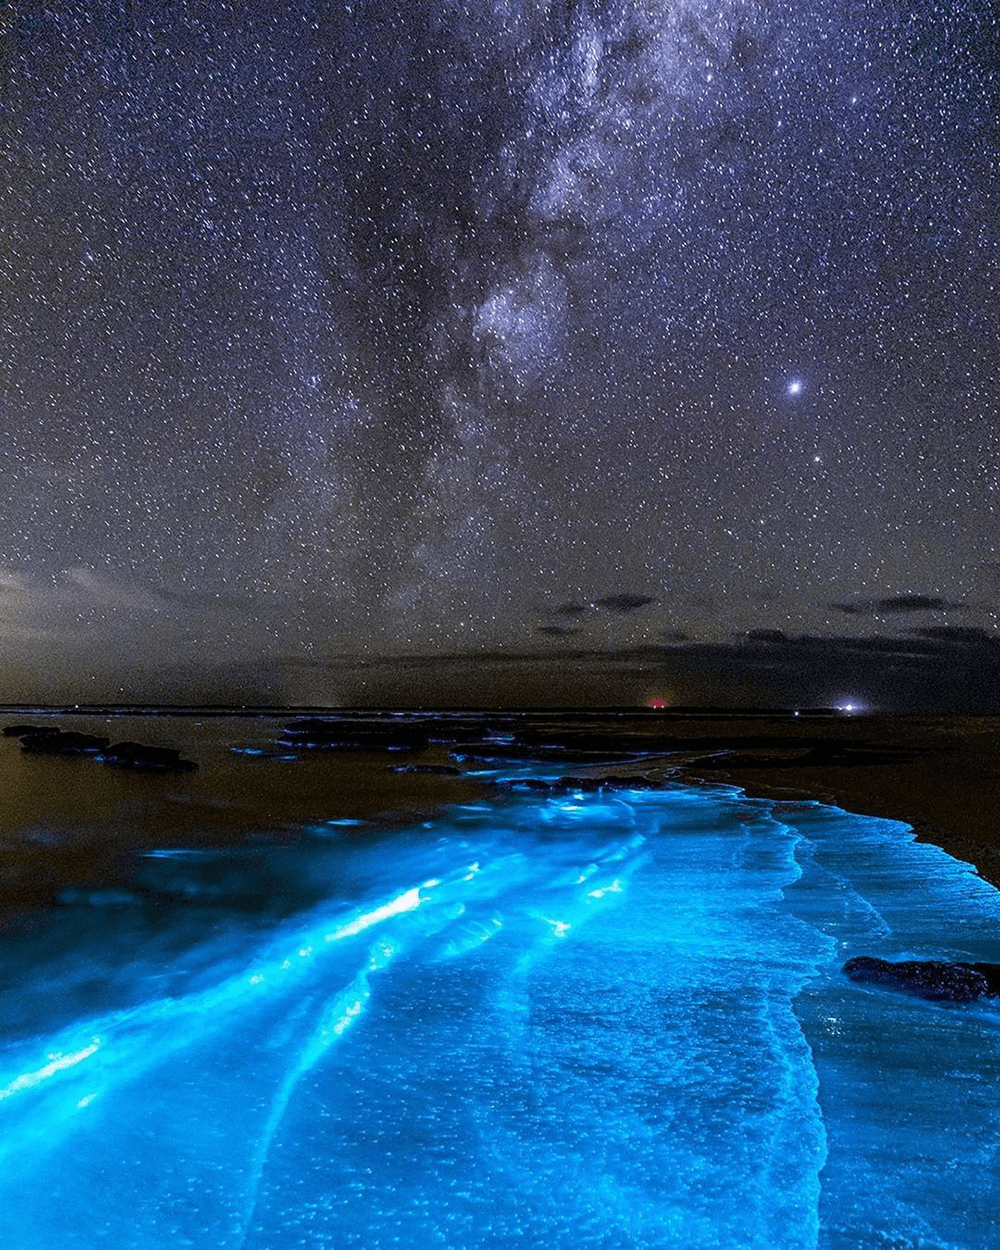 Image of bioluminescent algae taken on Anzac Day 2020 by @jordan_robins